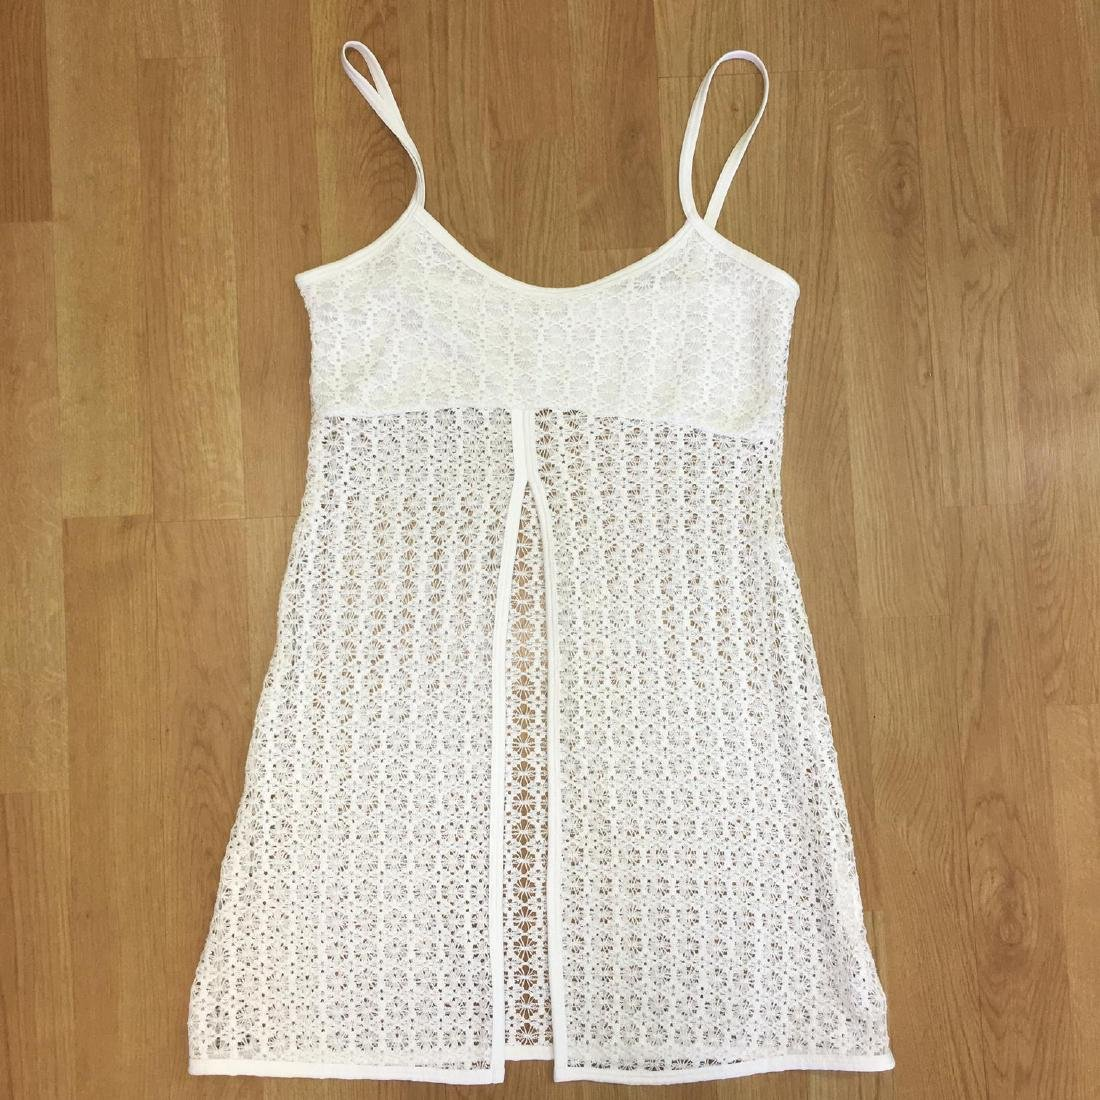 Vintage Women's White Crochet Shirt Blouse Top Size XS - 5